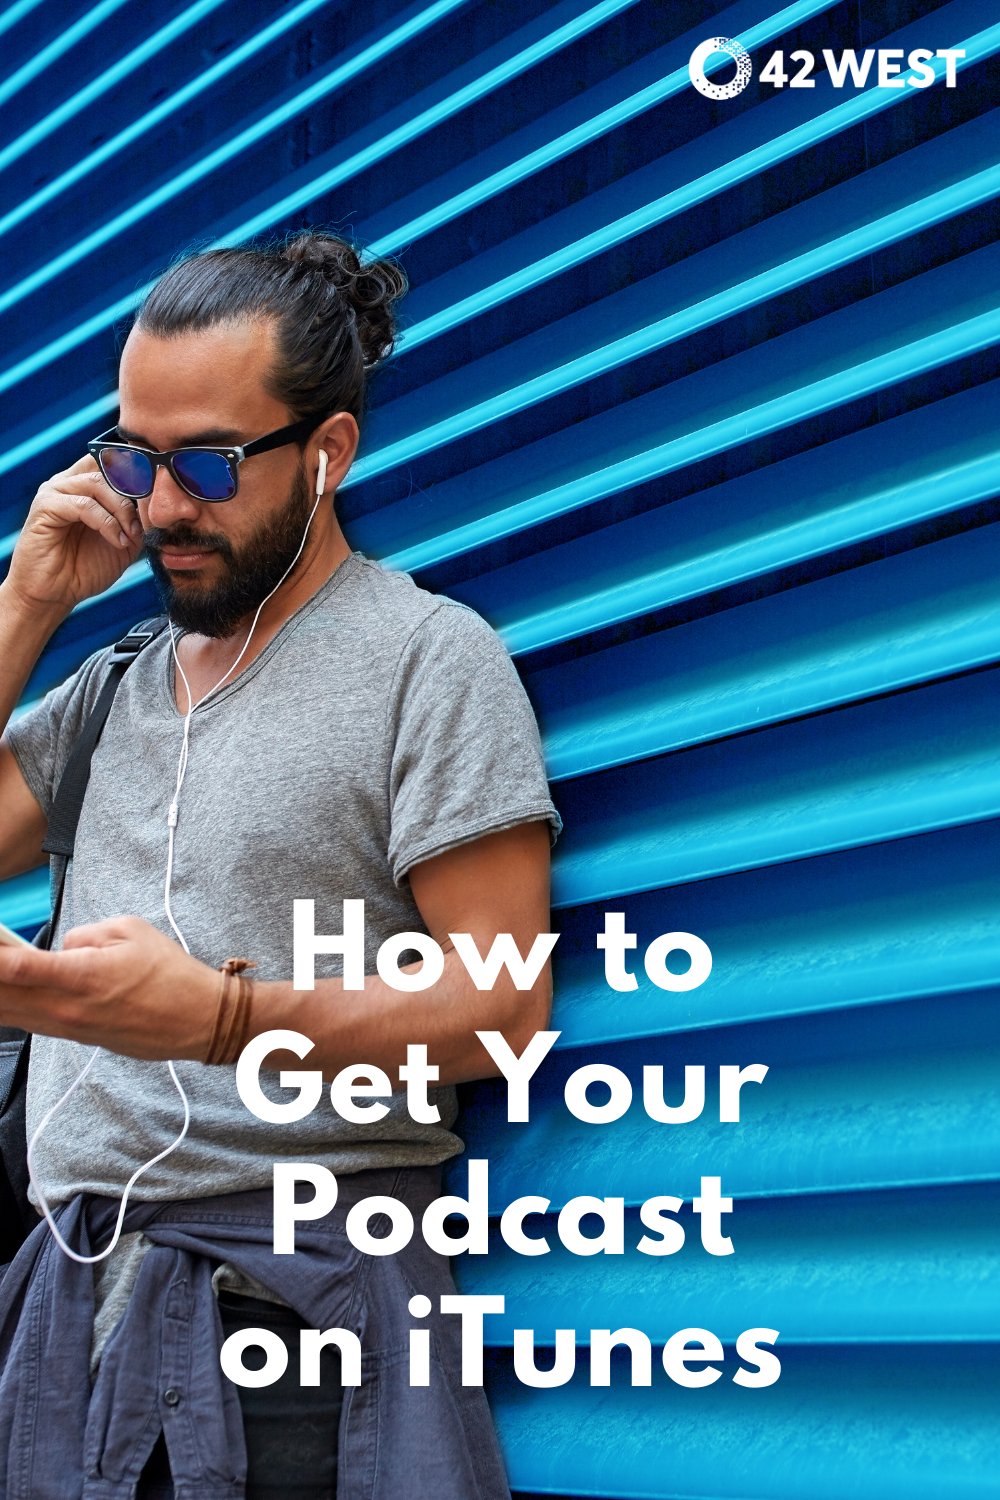 How To Get Your Podcast On Itunes 42 West The Adorama Learning Center Podcasts Itunes How To Get